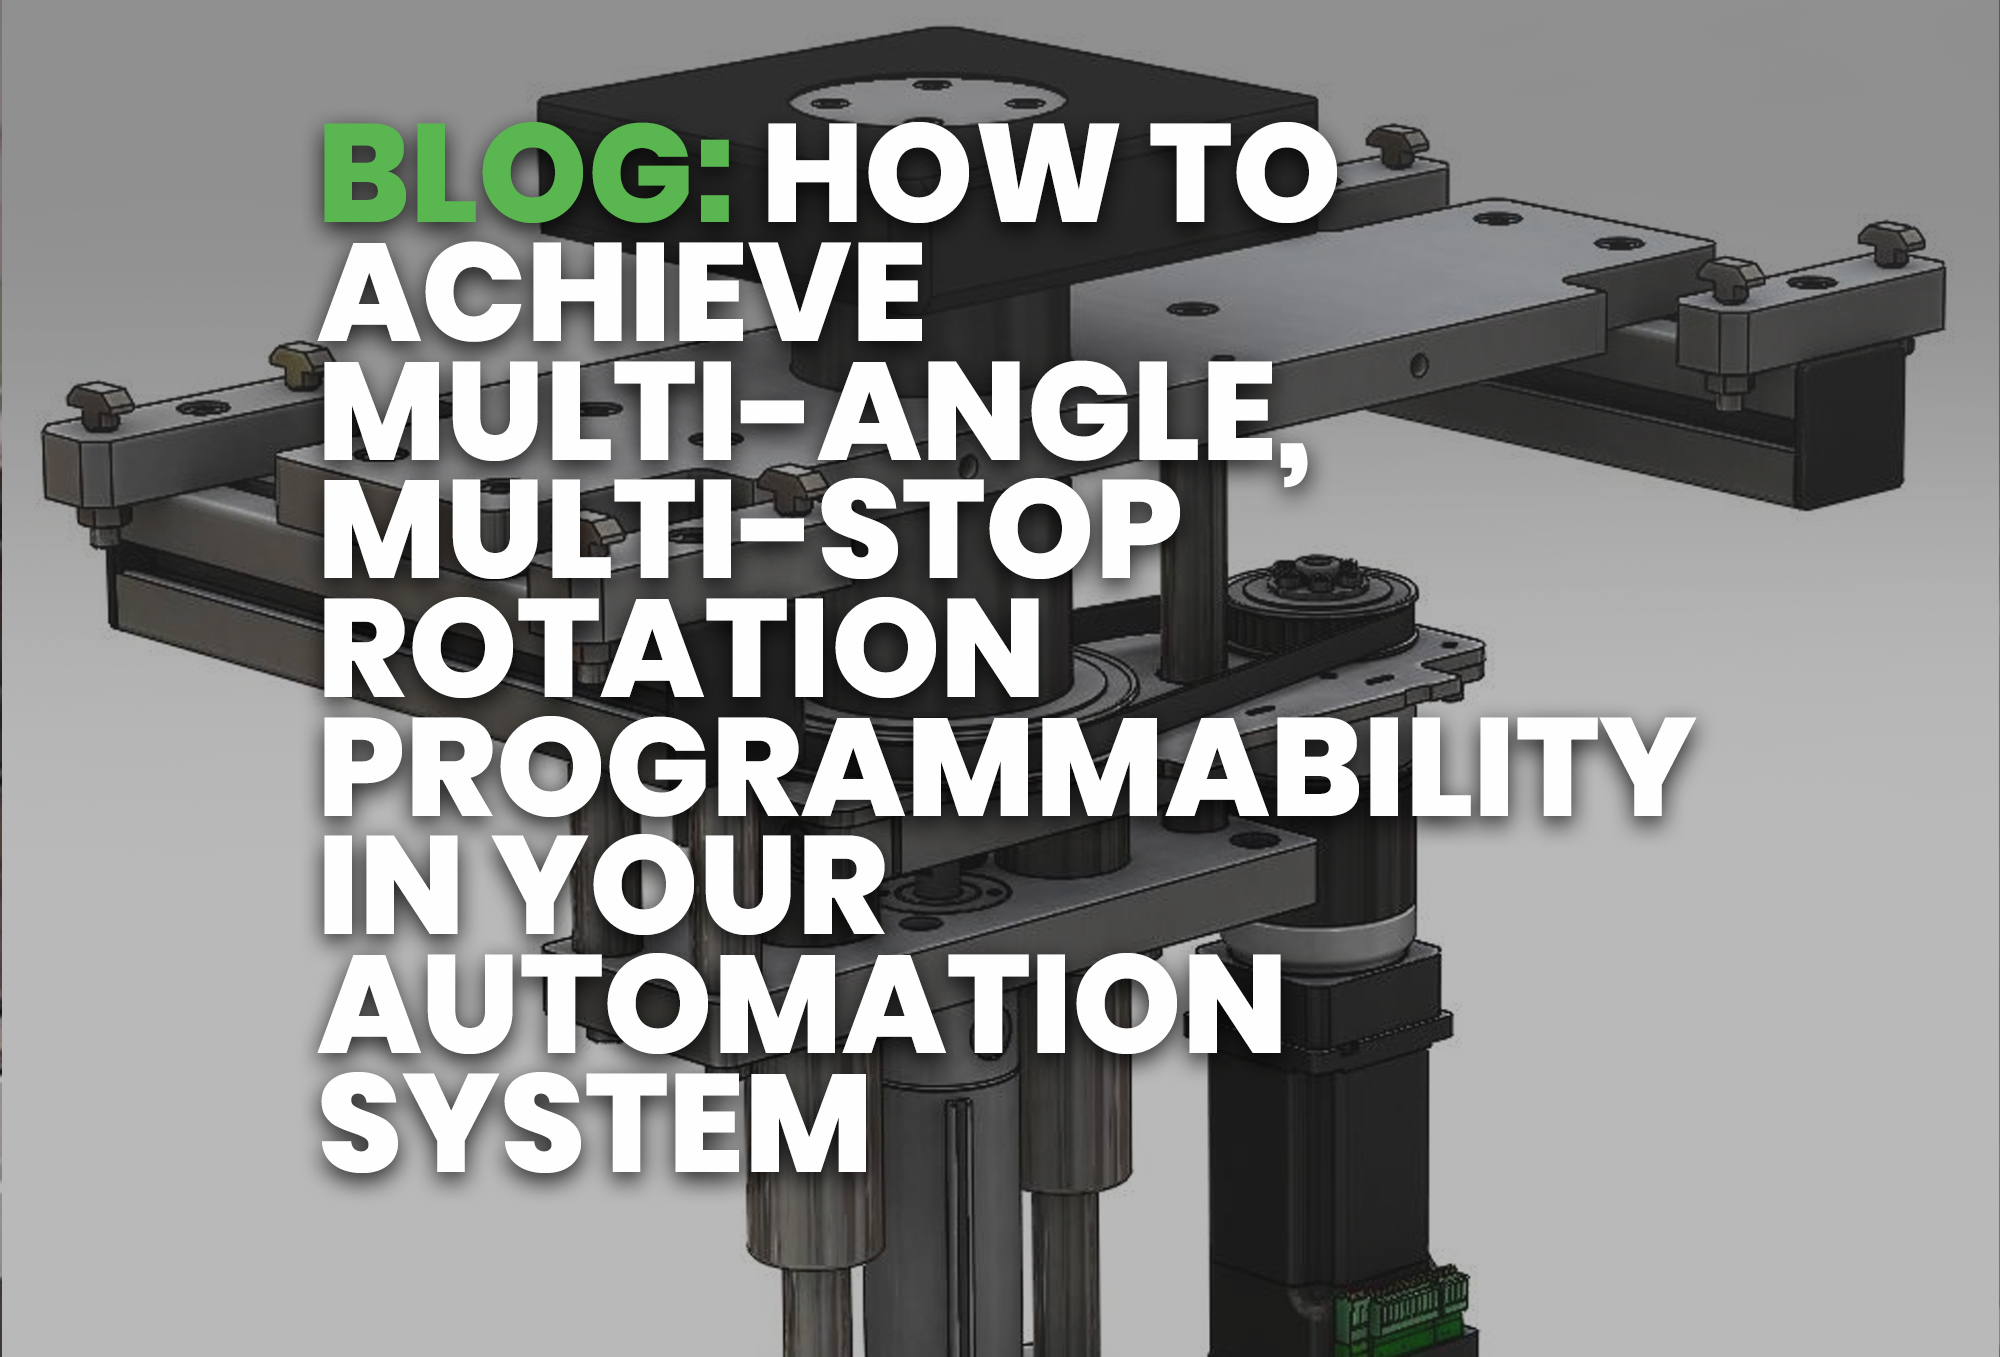 BLOG- How to Achieve Multi-Angle, Multi-Stop Rotation Programmability in Your Automation System